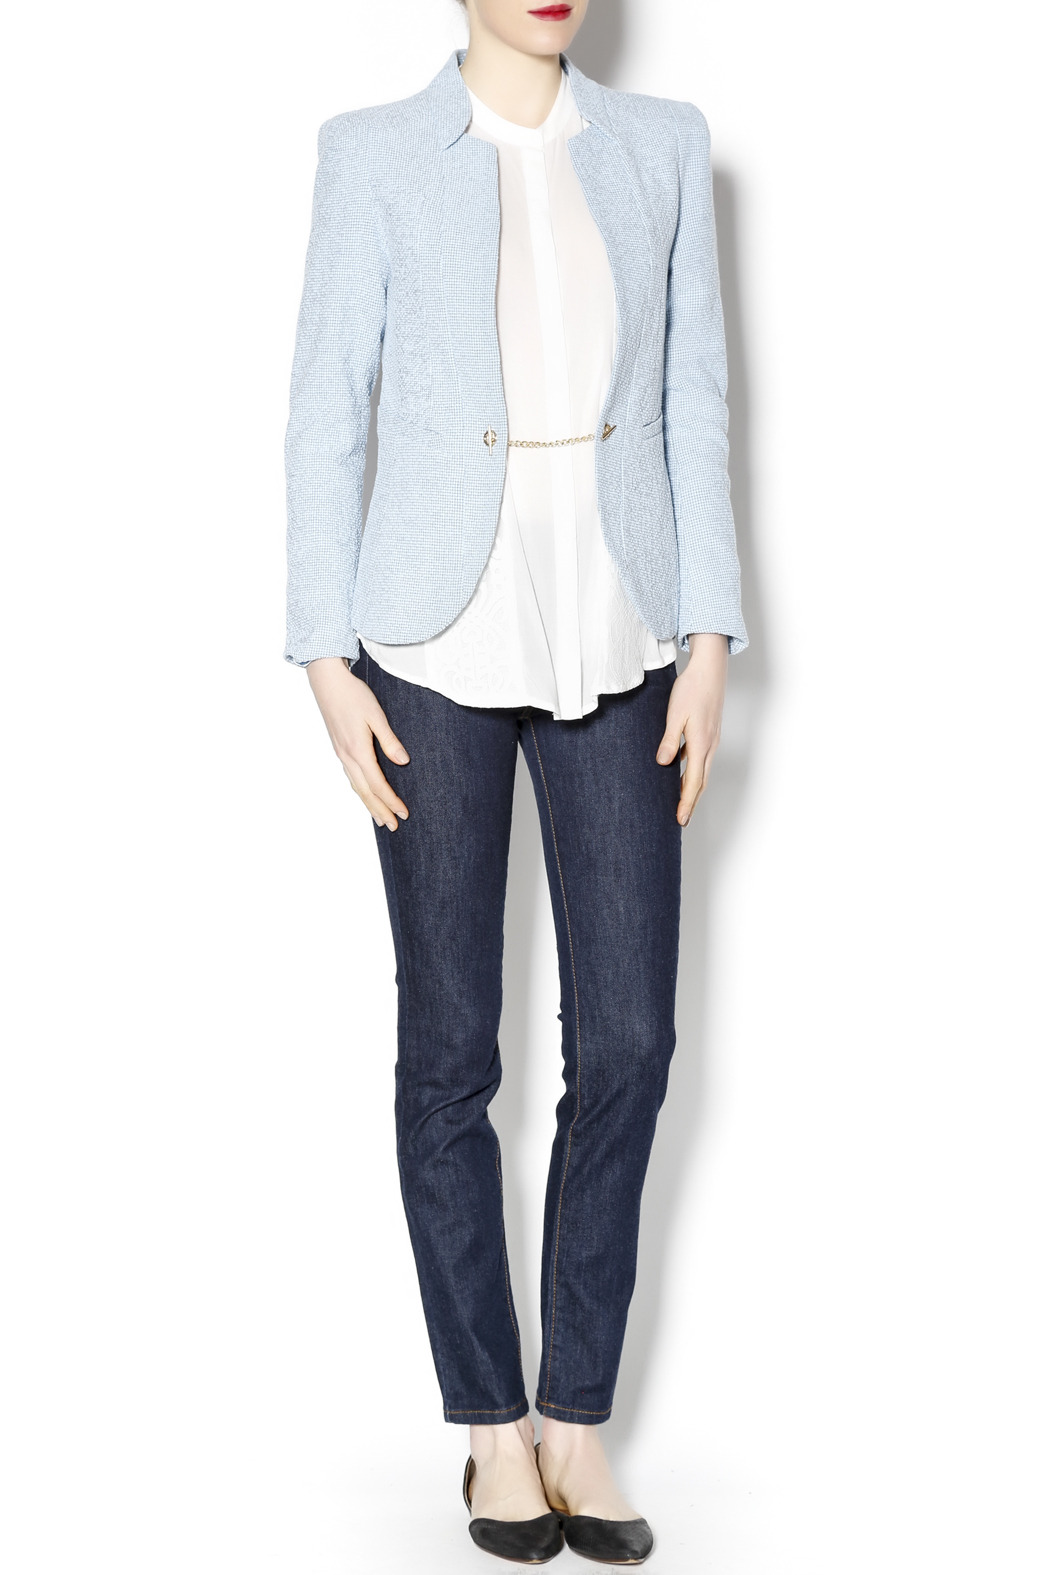 Lucy & Co. Powder Blue Blazer - Front Full Image